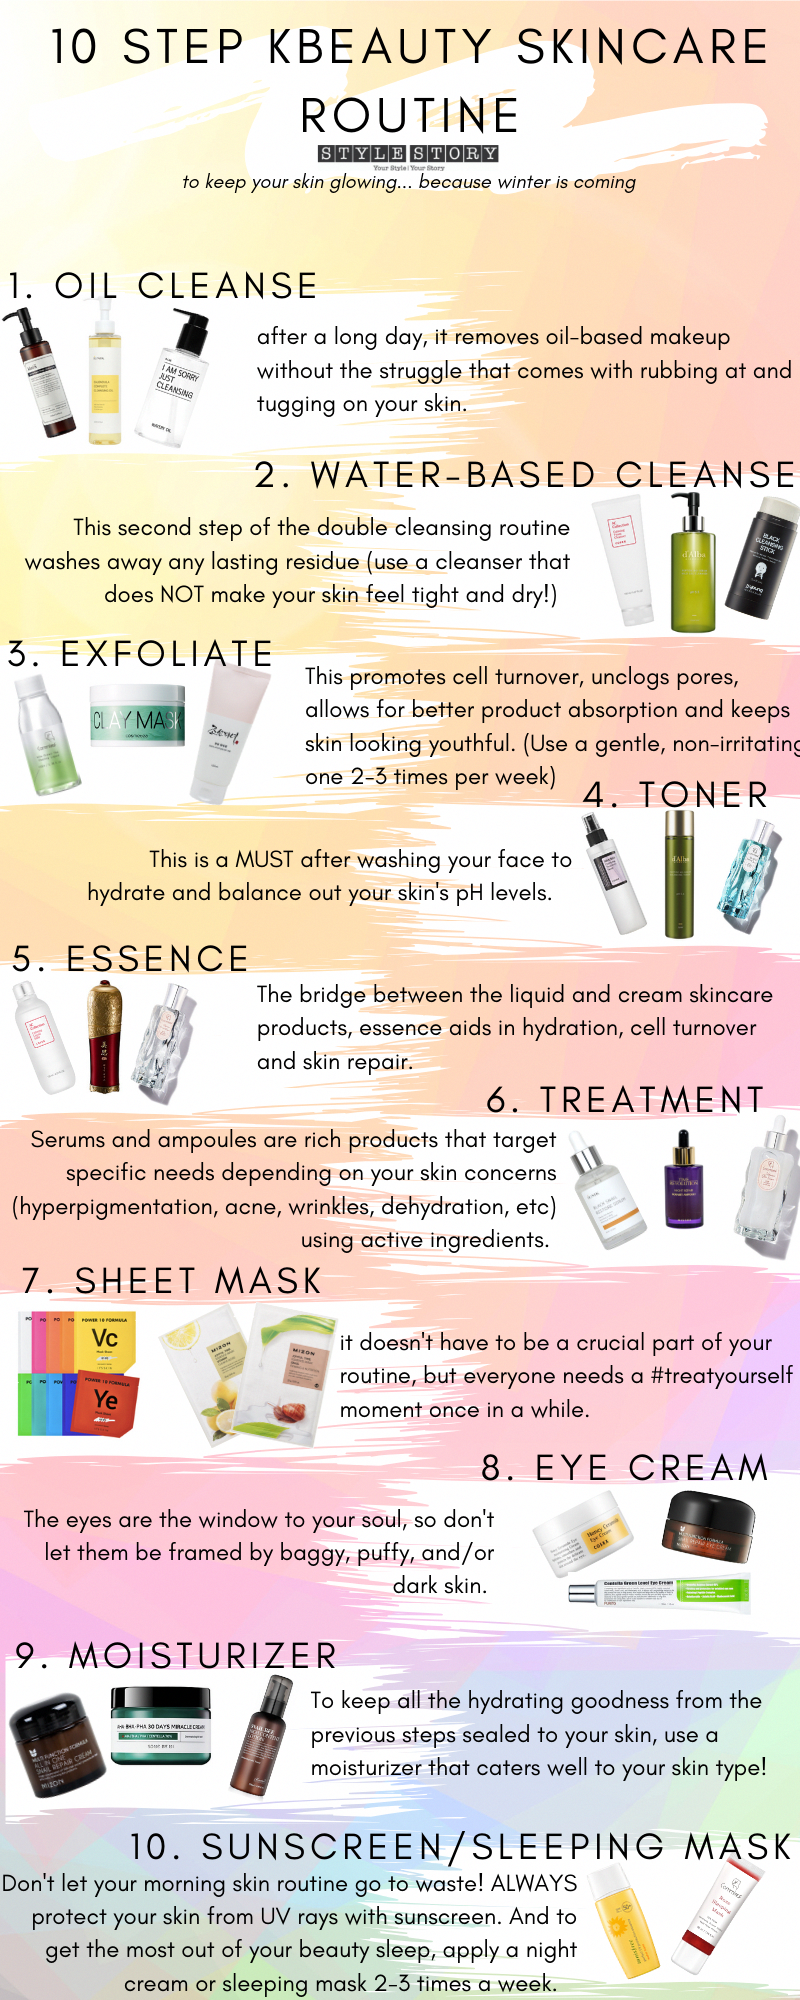 With Your Skin Being The Largest Organ Of Your Body It Only Makes Sense To Treat It Well F In 2020 K Beauty Routine Skin Care Routine Steps Beauty Skin Care Routine